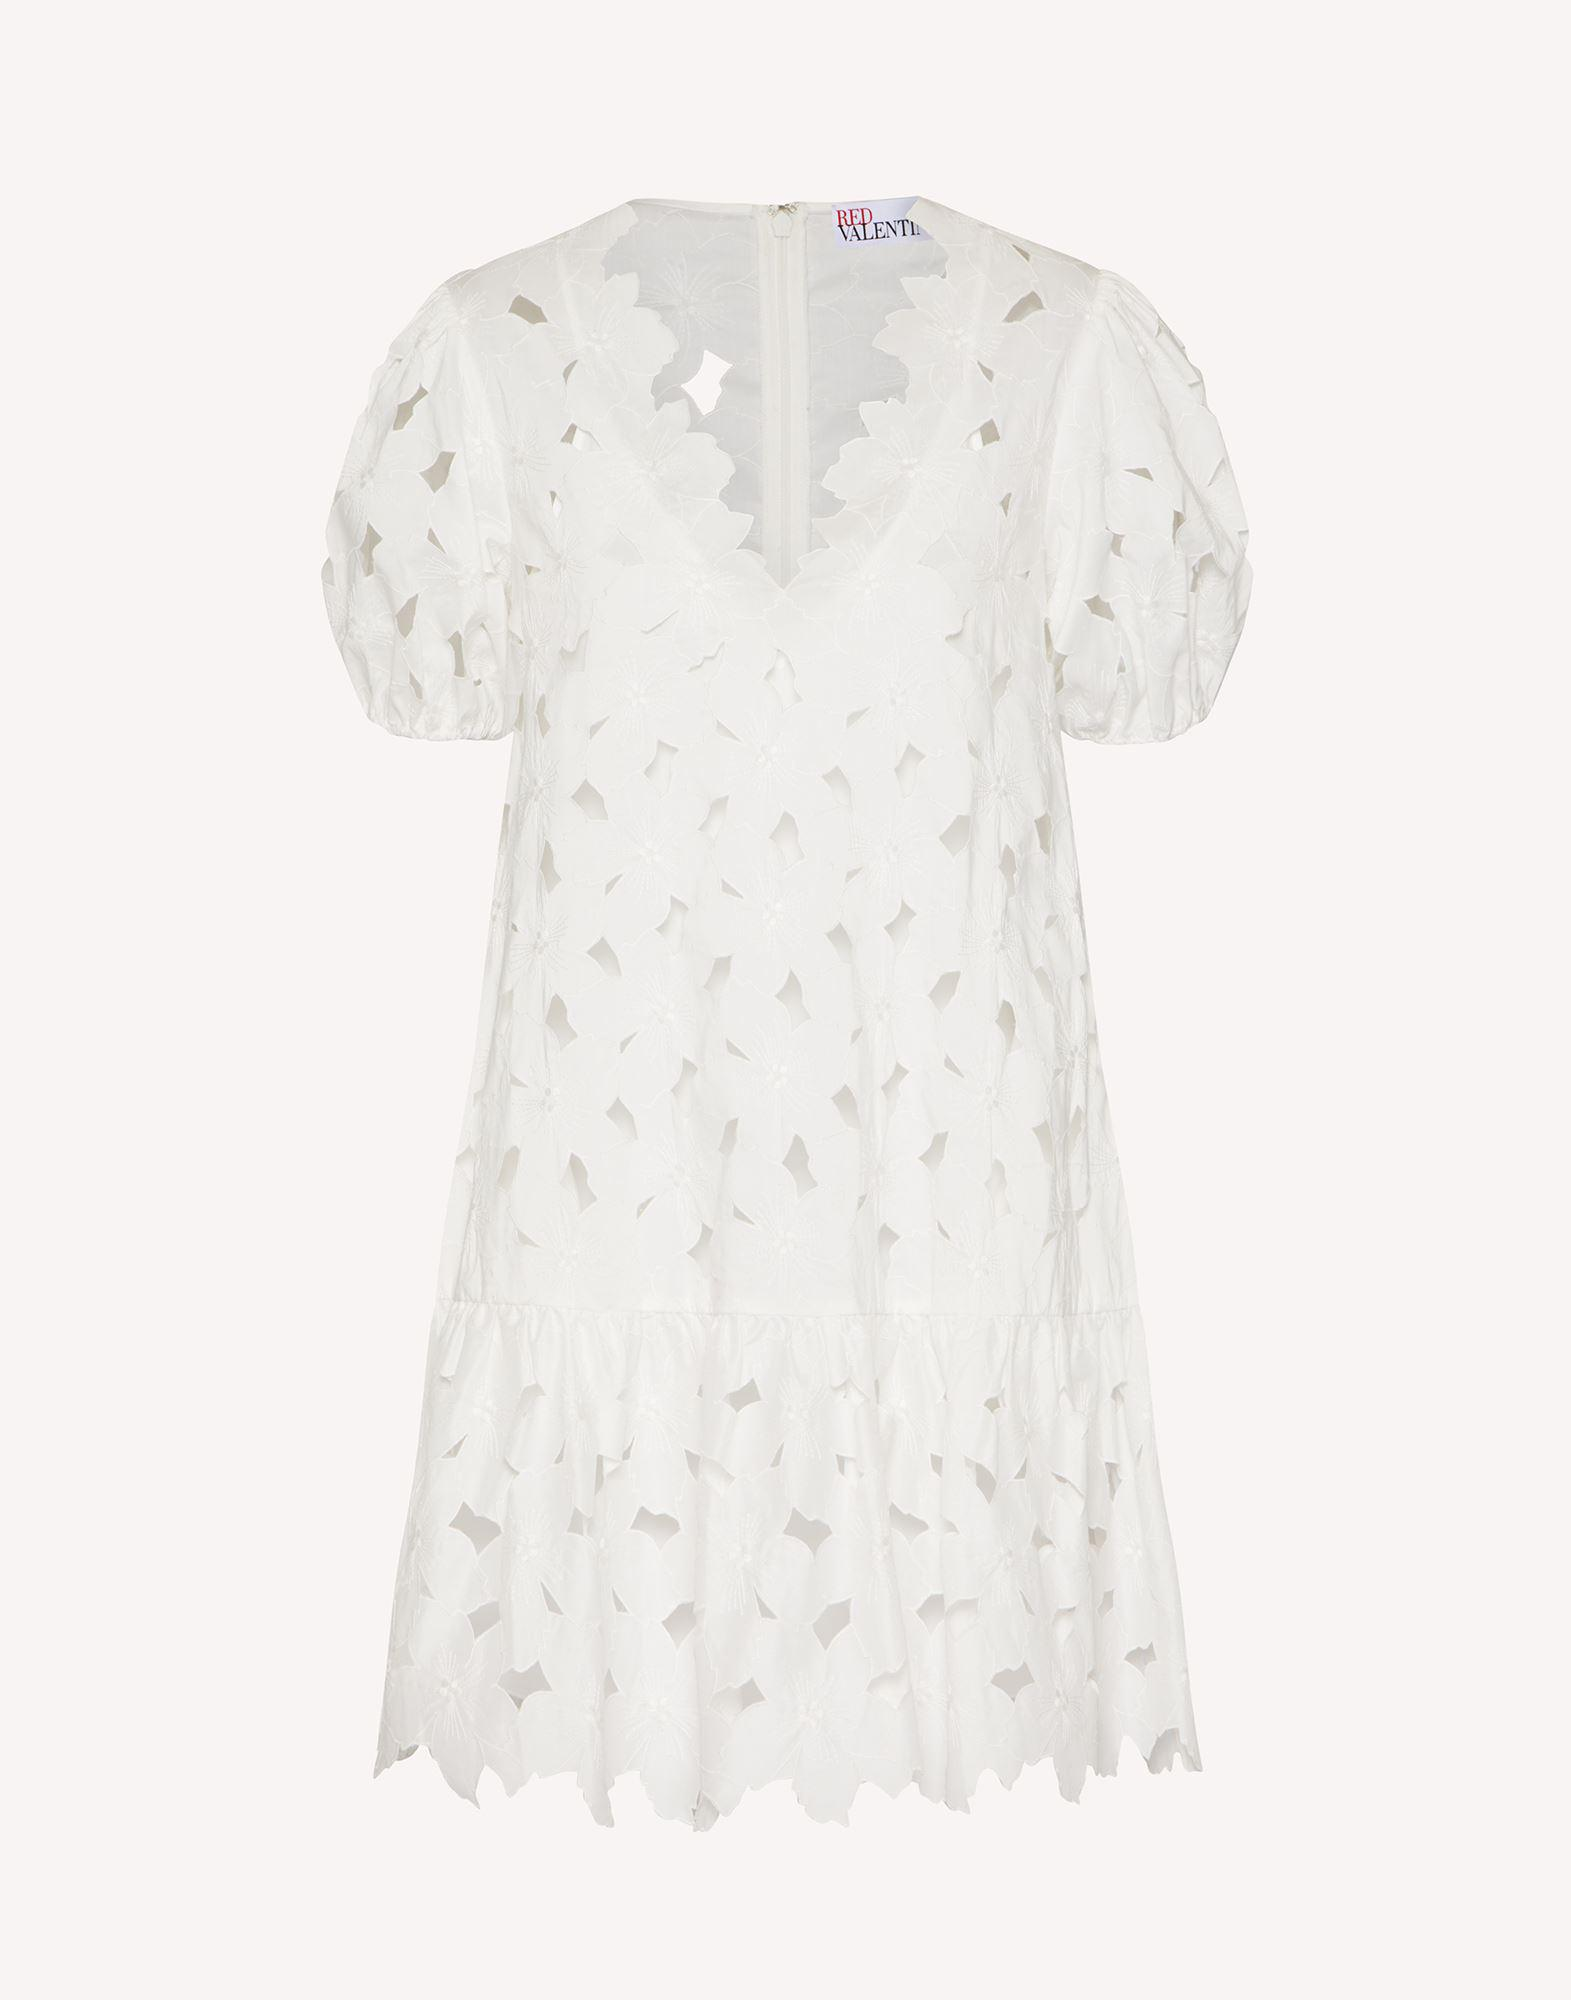 COTTON POPLIN DRESS WITH CUT-OUT EMBROIDERY 4